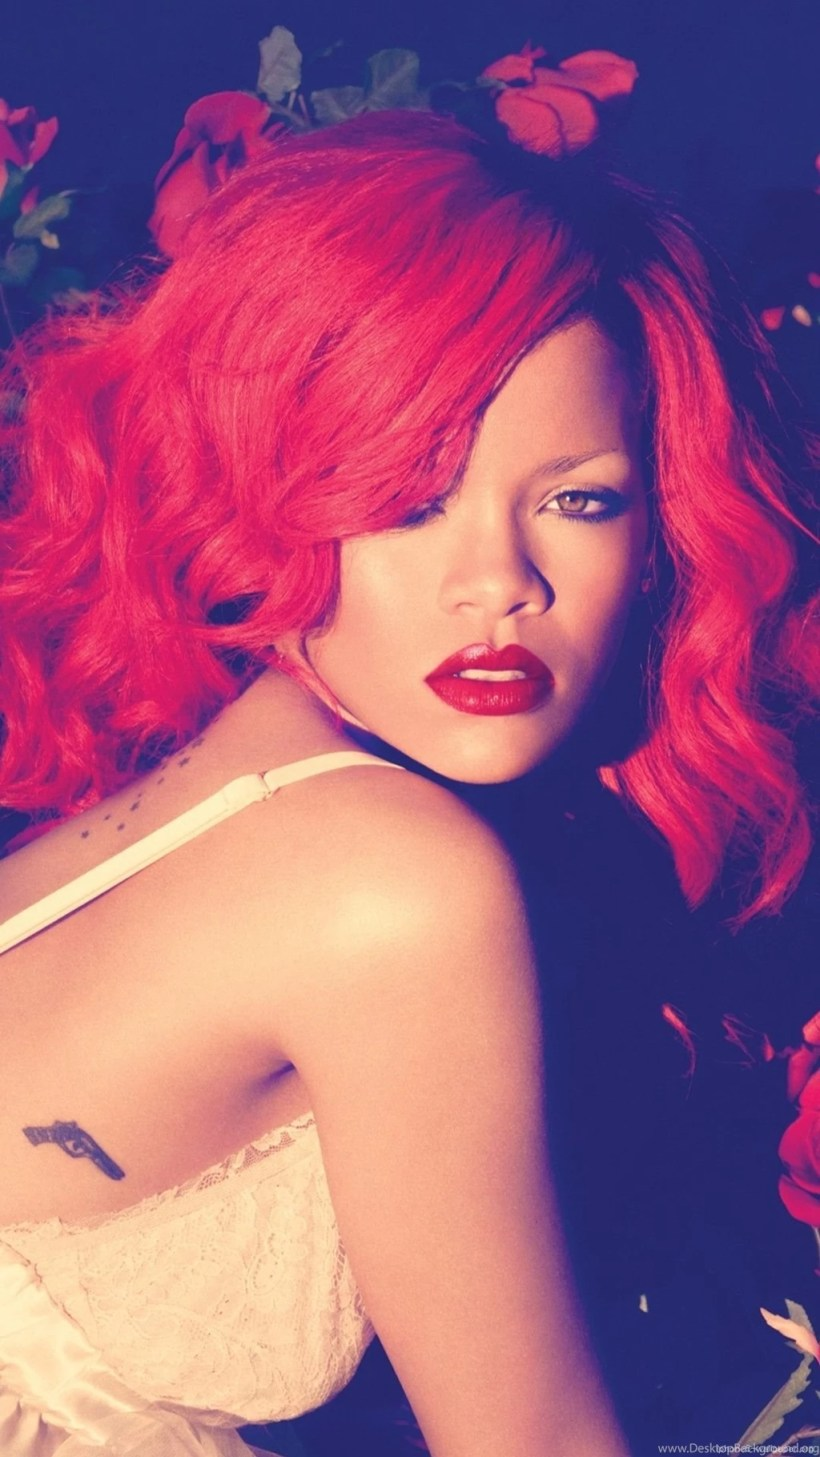 Rihanna Iphone 6 Plus Wallpapers 1080p Background Wallpaper